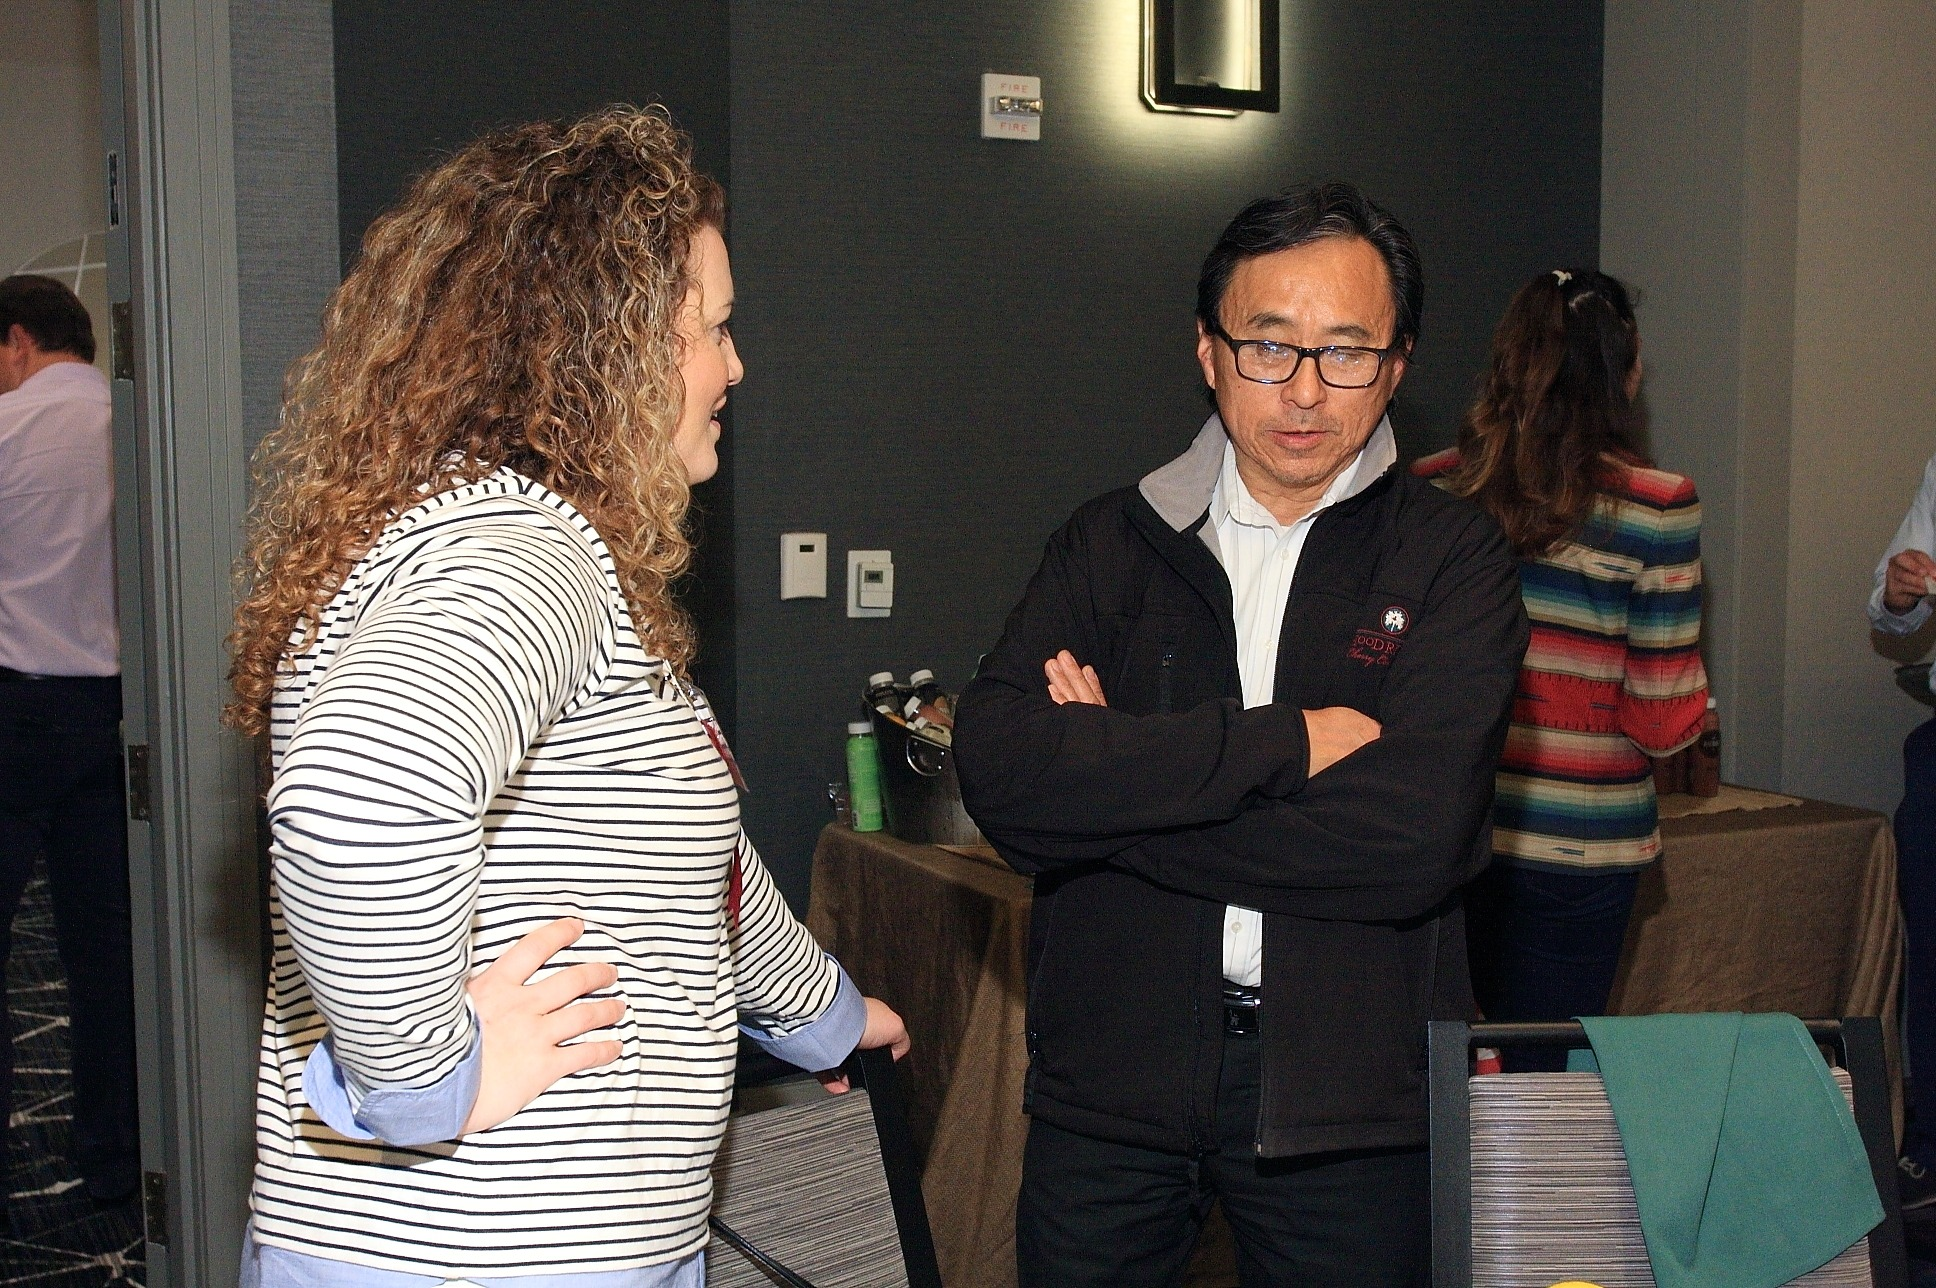 Kori Martin of The Oppenheimer Group and John Fujii from Gelson's Markets chat before the luncheon